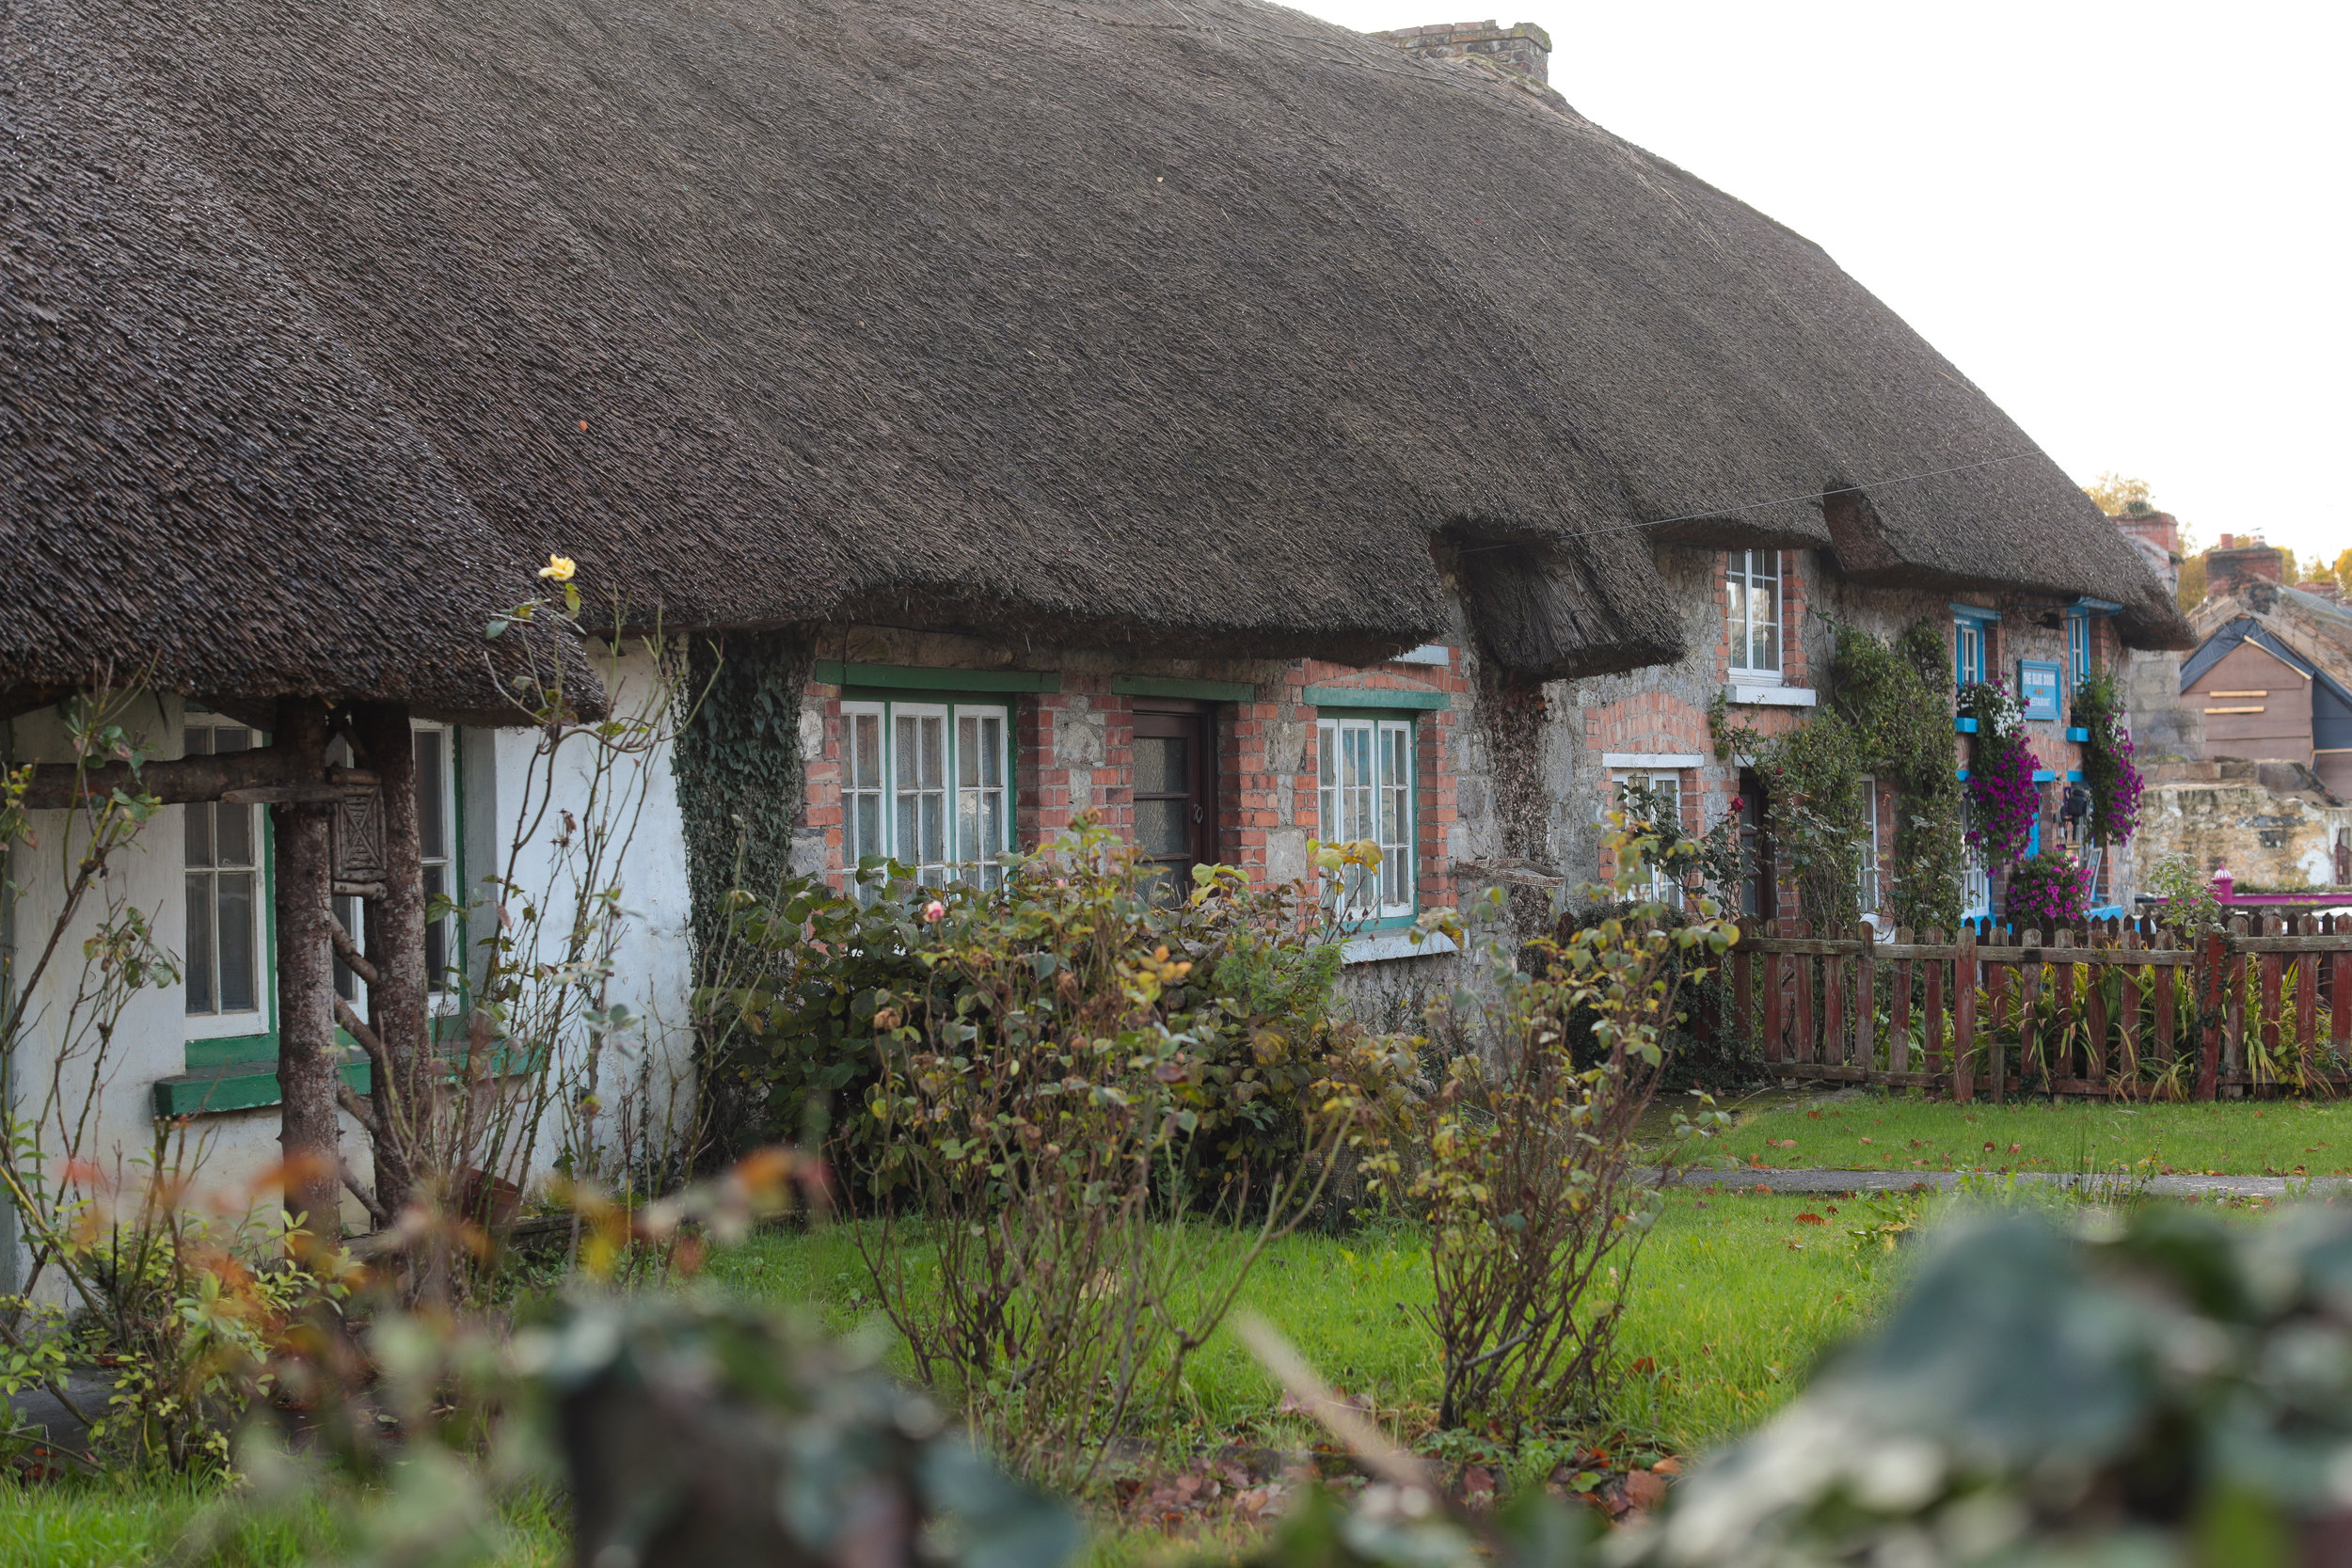 Thatched roofs in Adare